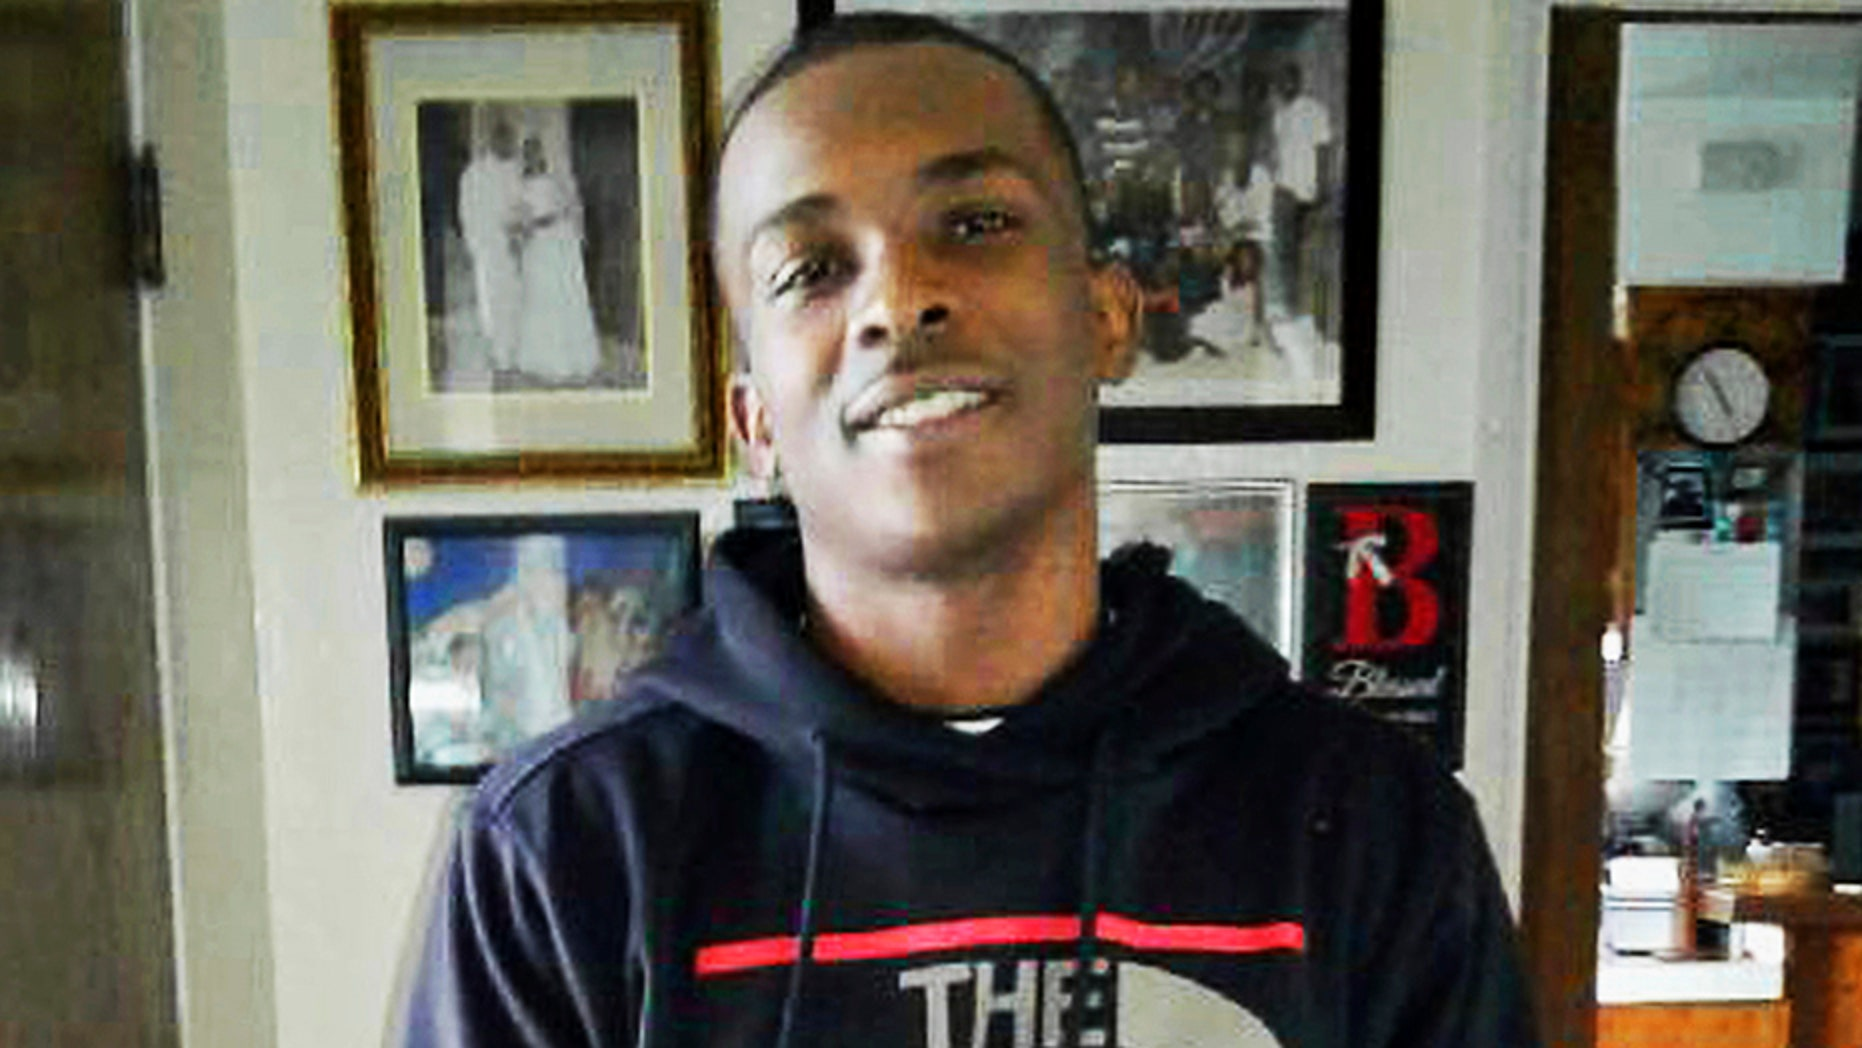 Stephon Clark he died in a hail of police gunfire in the backyard of his grandmother Sequita Thompson's home in Sacramento, Calif.